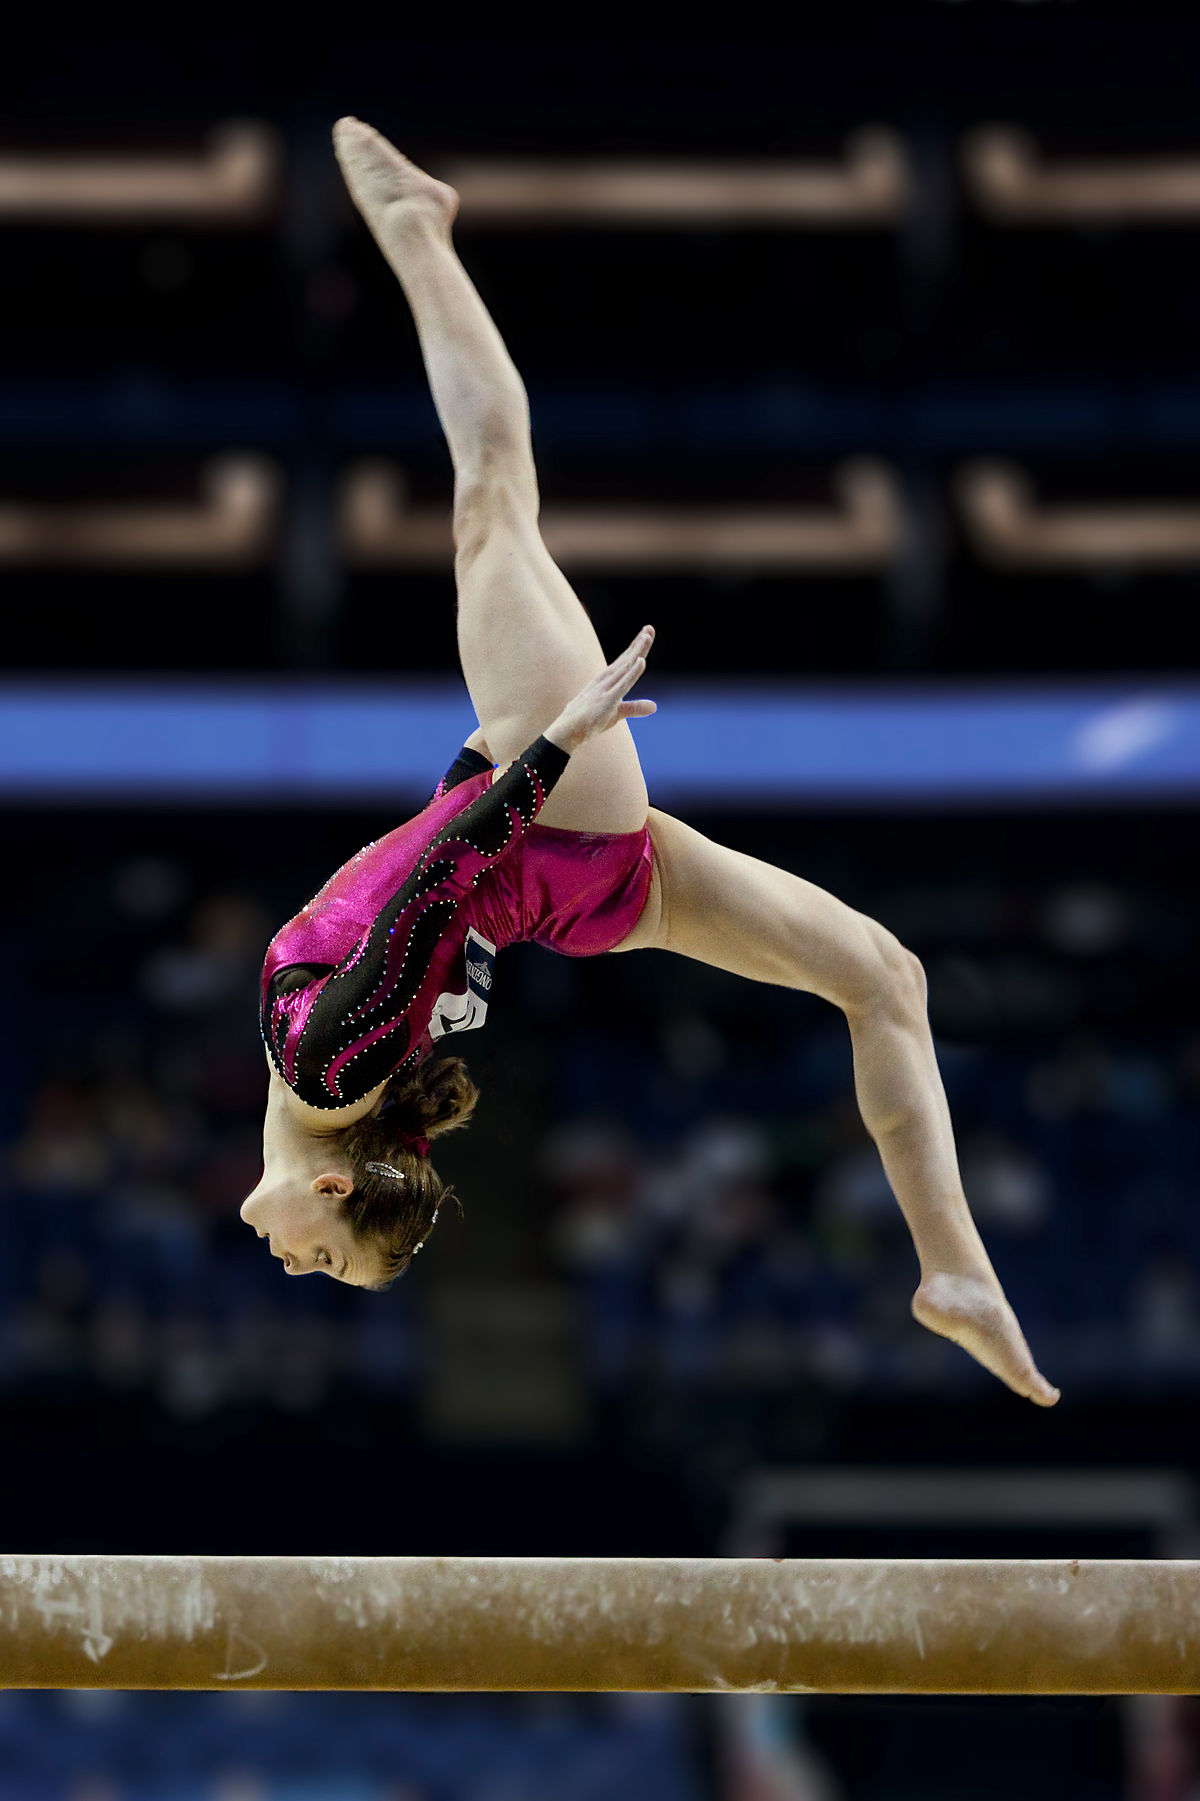 gymnastics simple english wikipedia the free encyclopedia